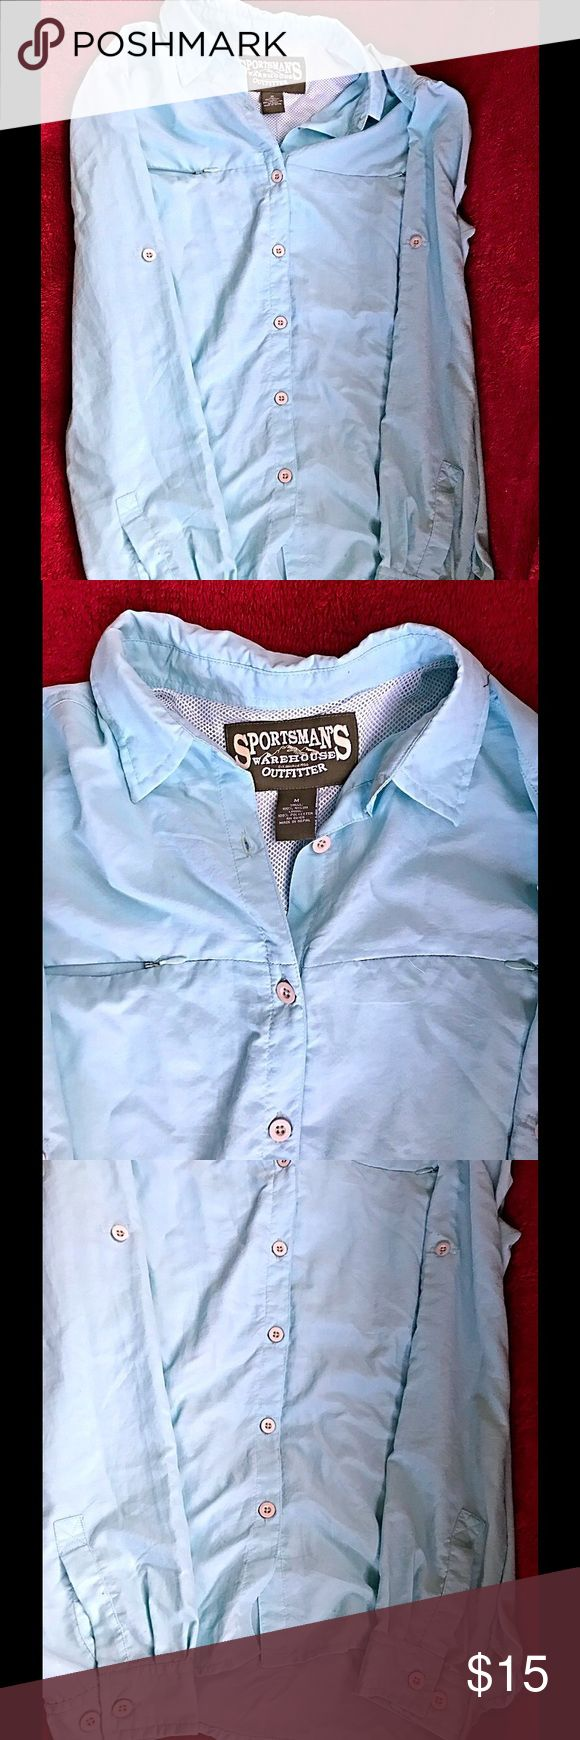 Womens Lost River Fishing Shirt This is new, never worn with tags. It is a powder blue women's outdoor button down shirt. Size medium. 100% nylon. Shirt marked Sportsman Warehouse Outfitter on the inside tag. And Sportsman Warehouse machine stitched int to the upper back of the shirt. The original tags state Lost River  Women's  fishing Shirt, Sun protective fabric. This shirt was in a smoke and pet free home. Sportsman's Warehouse Tops Button Down Shirts